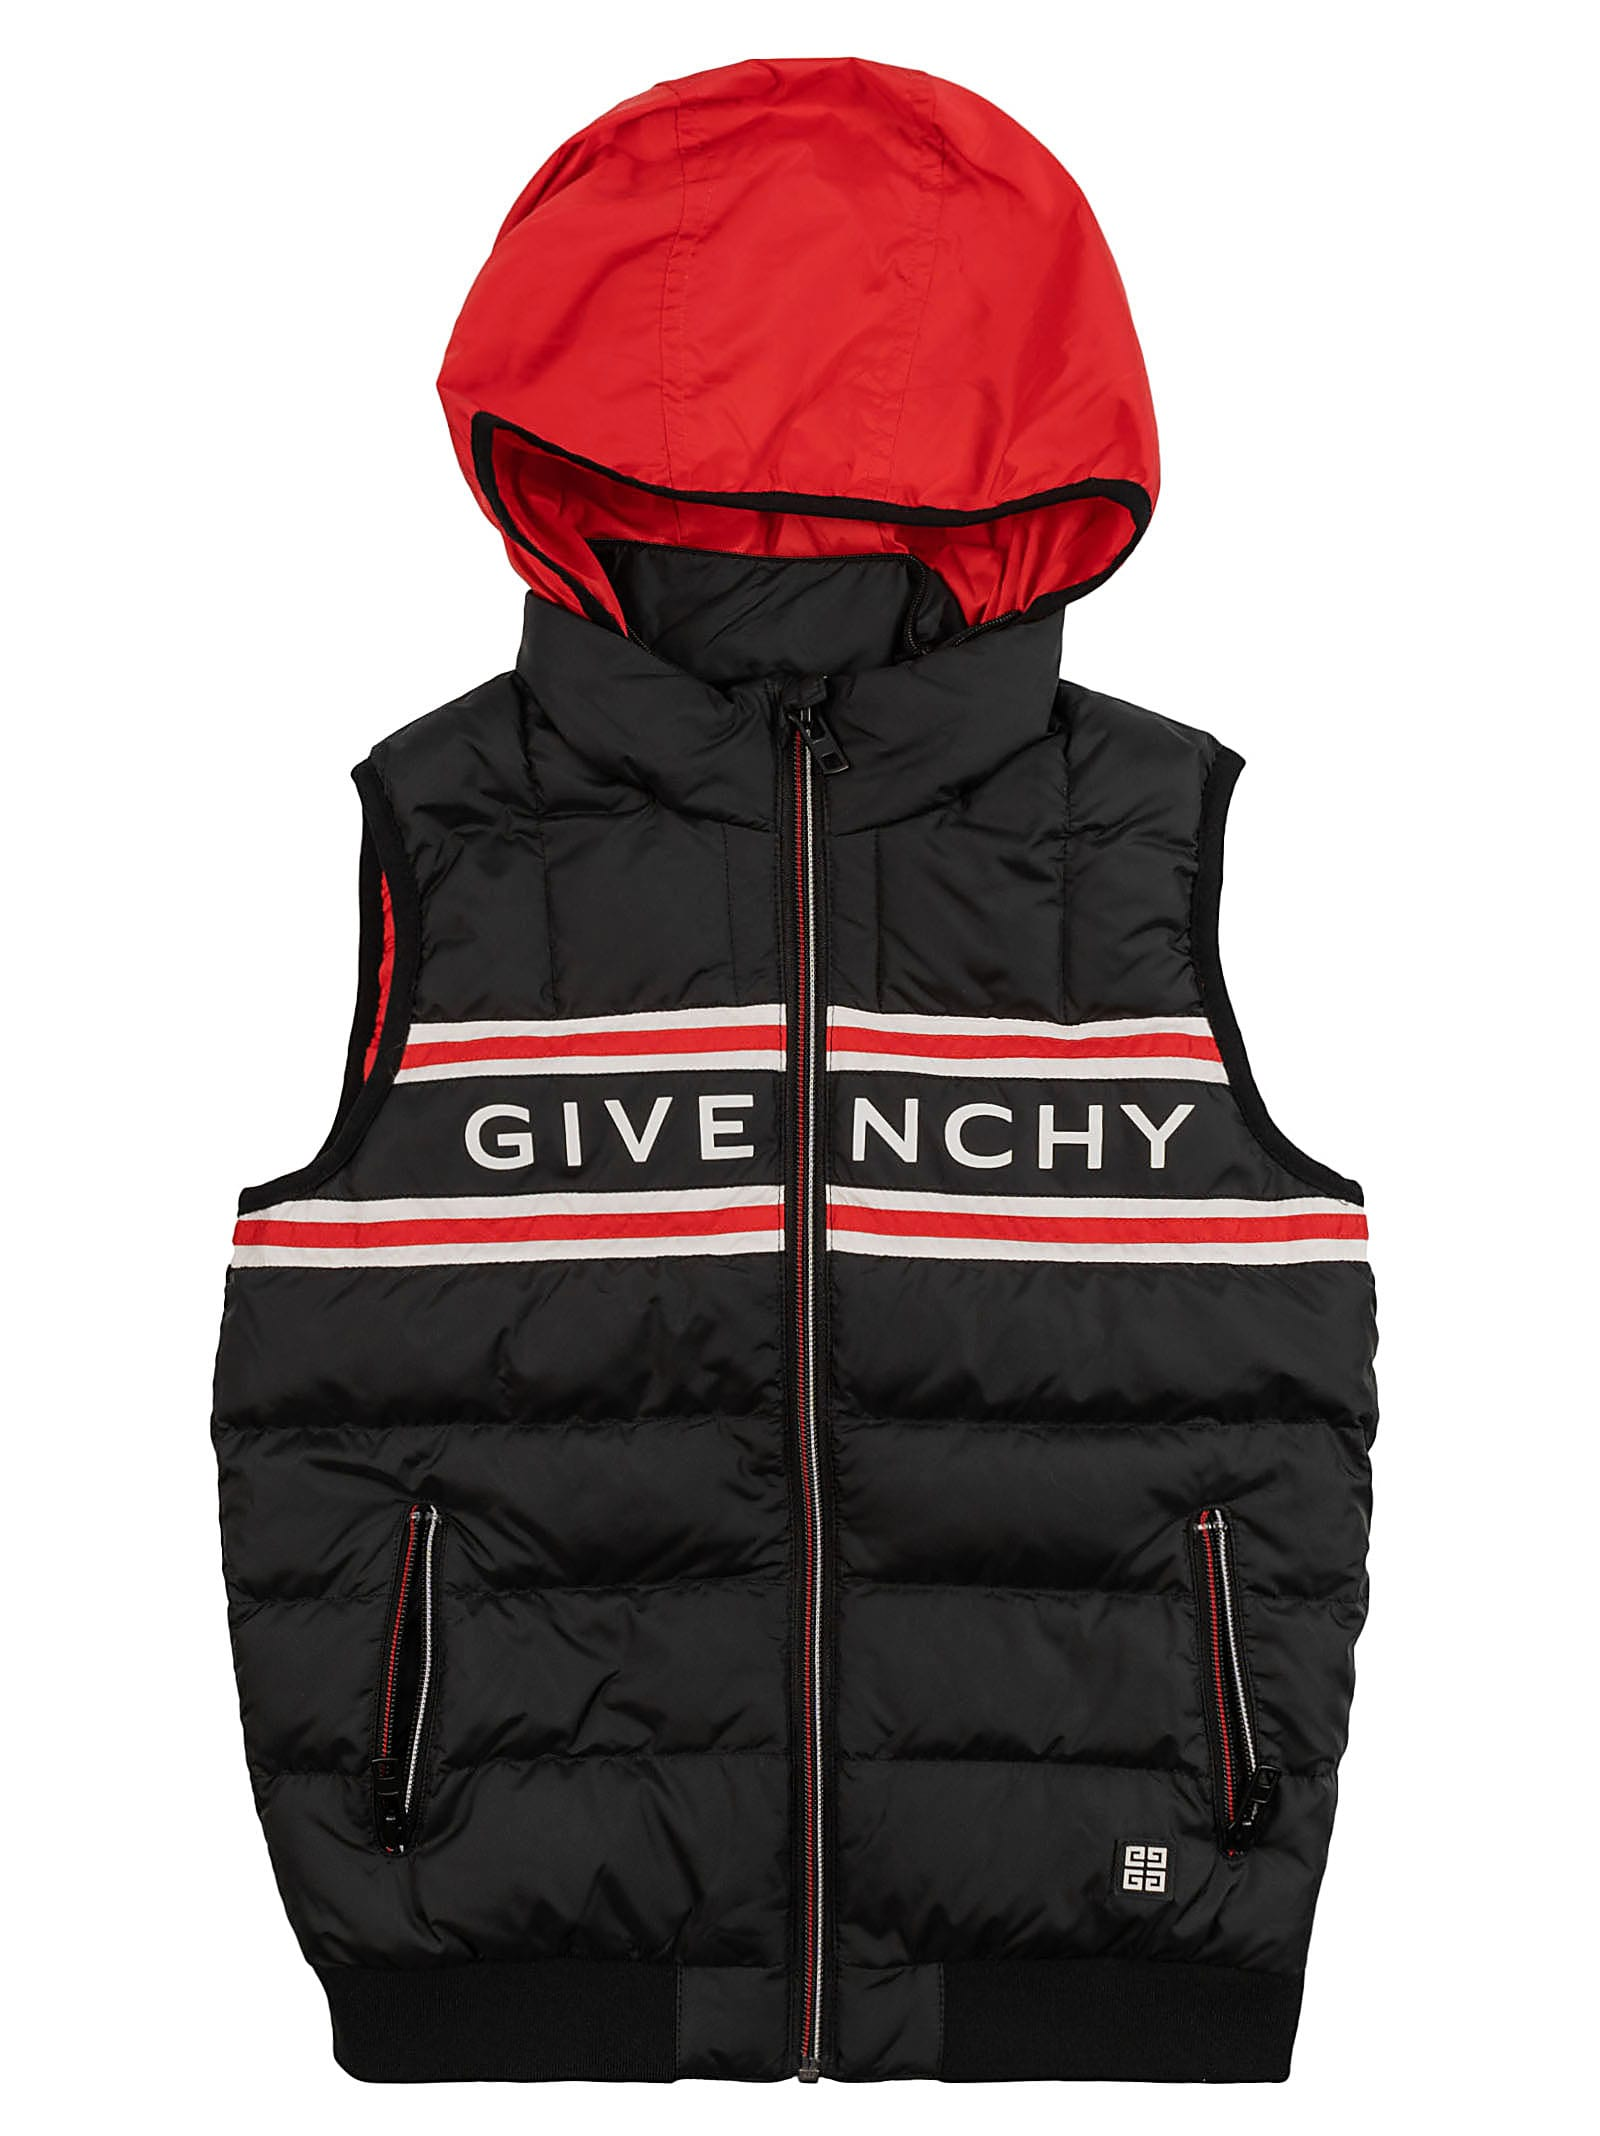 Givenchy Kids' Hooded Vest In Black/red